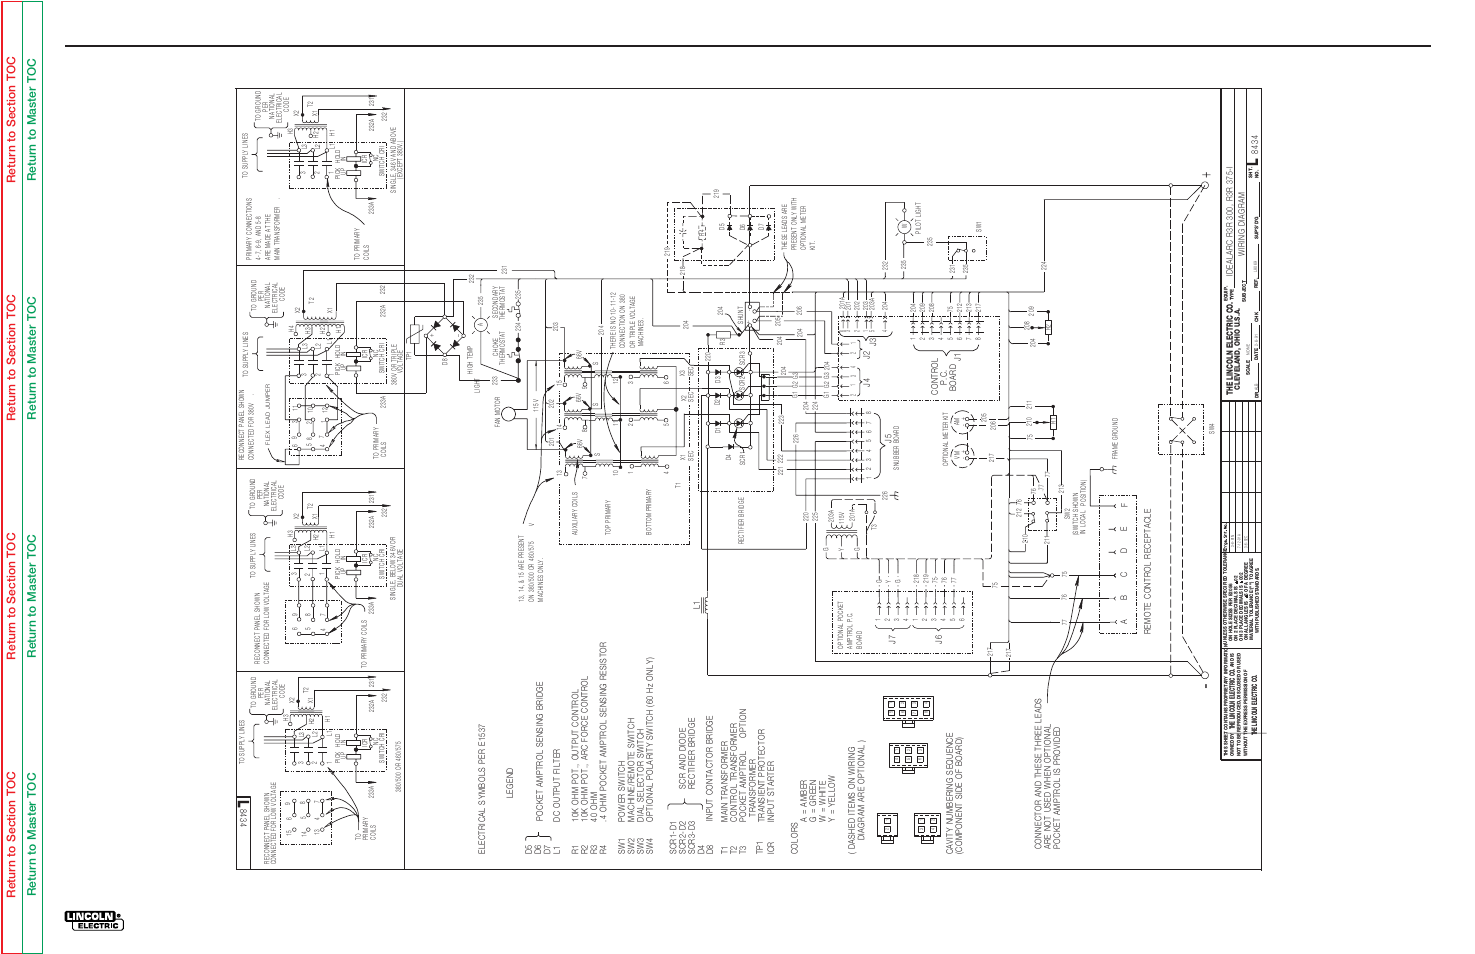 Electrical Diagrams Wiring Diagram R3r 300 Lincoln Electric Basic 101 Idealarc 500